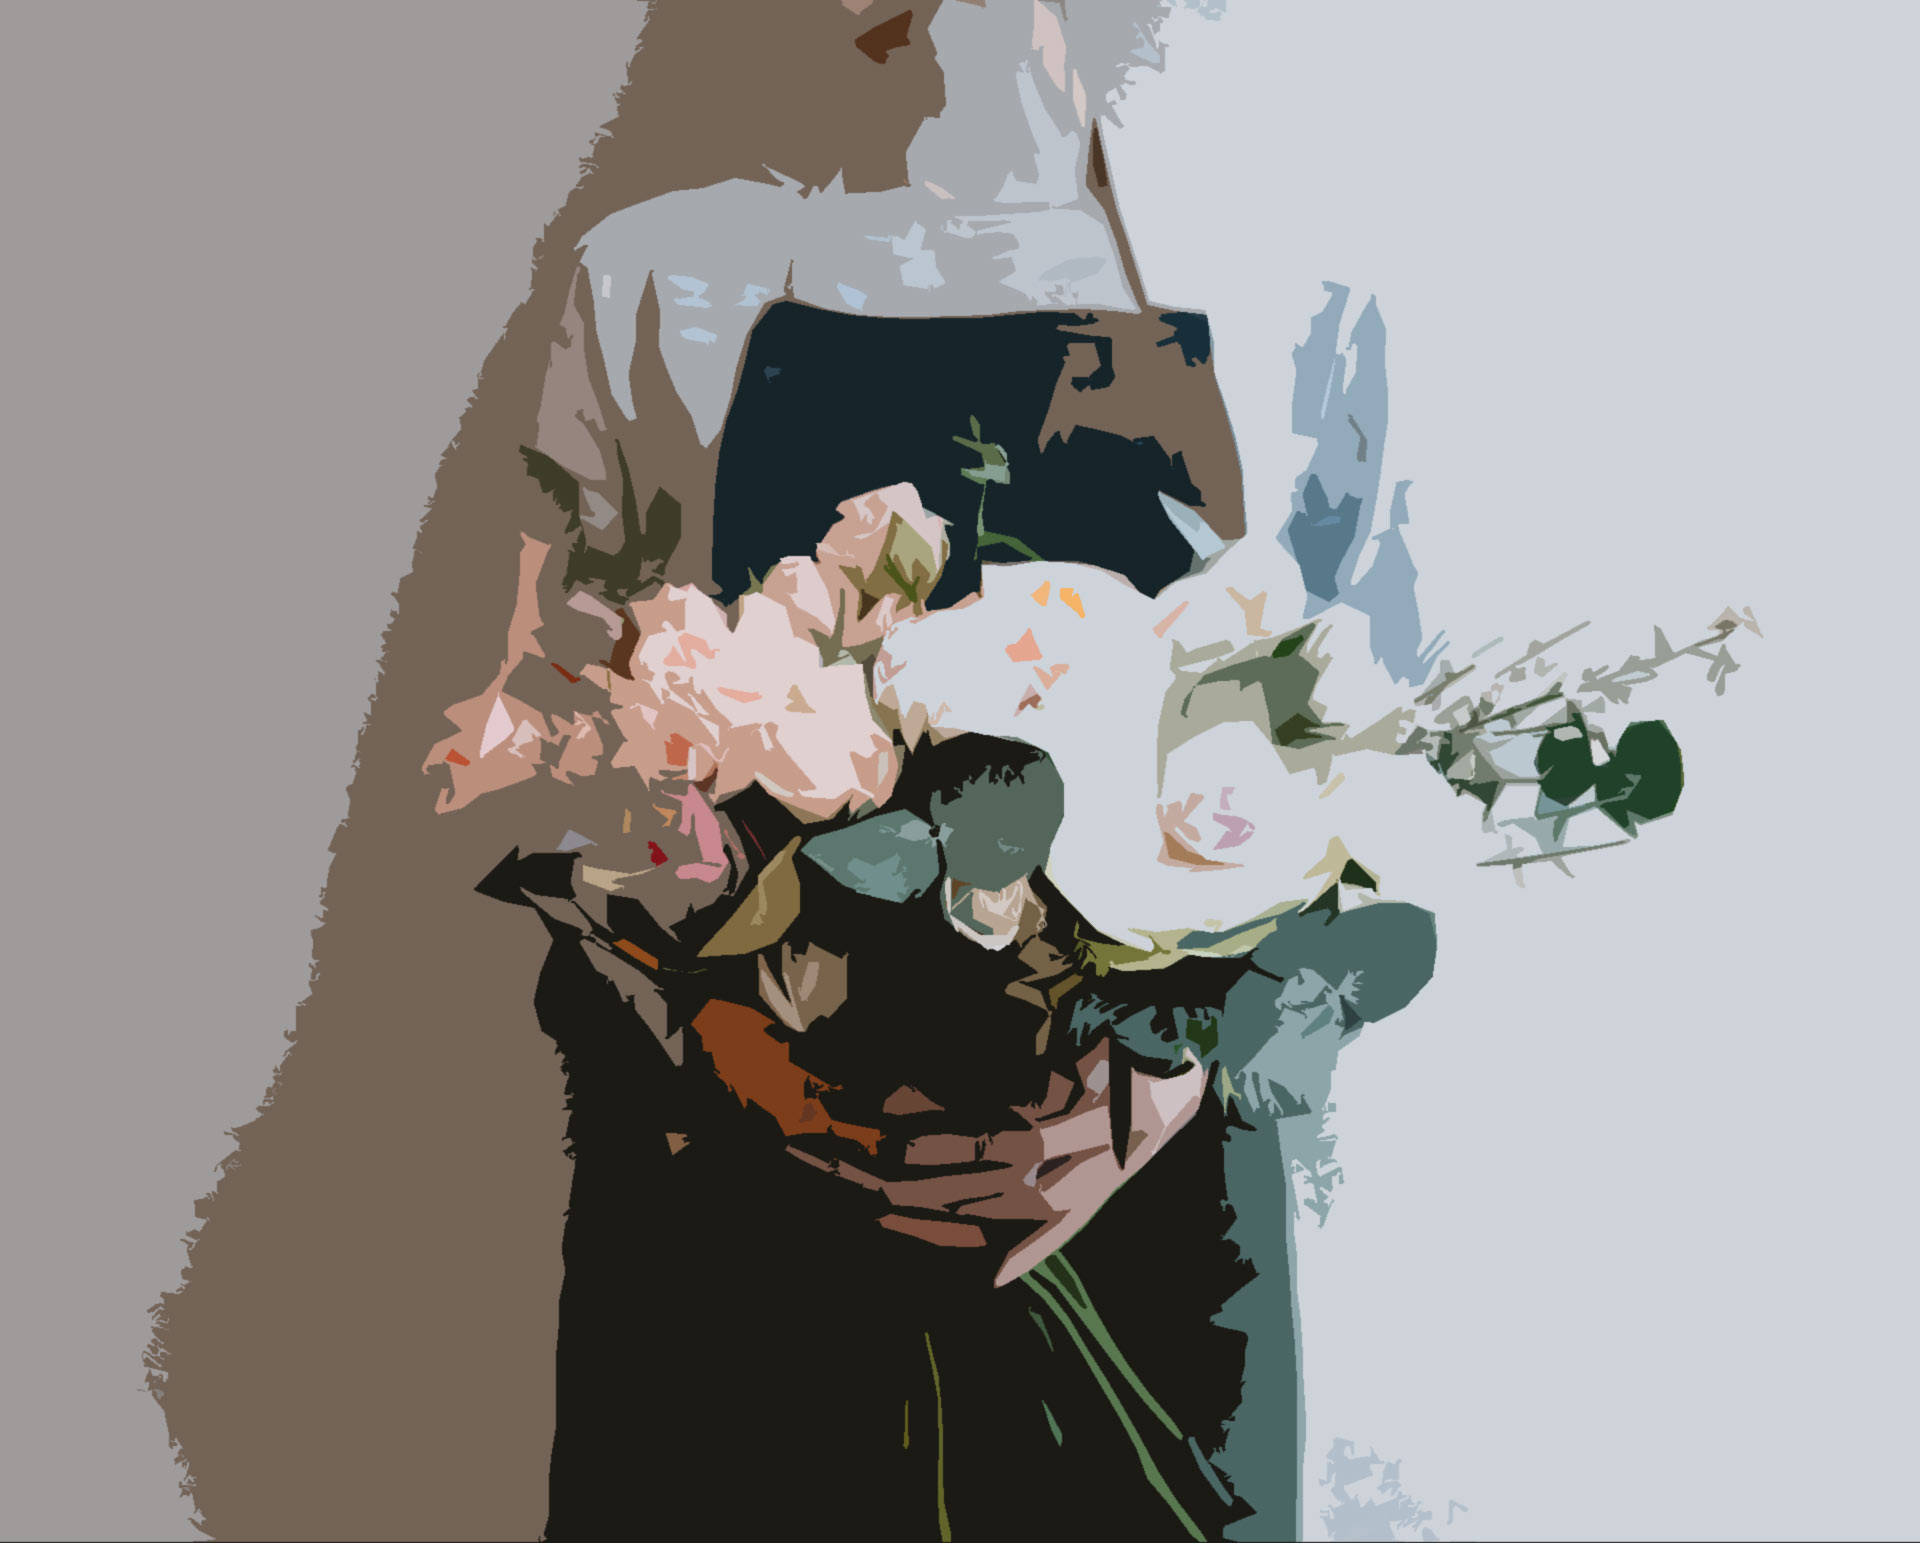 a woman with a flower bouquet